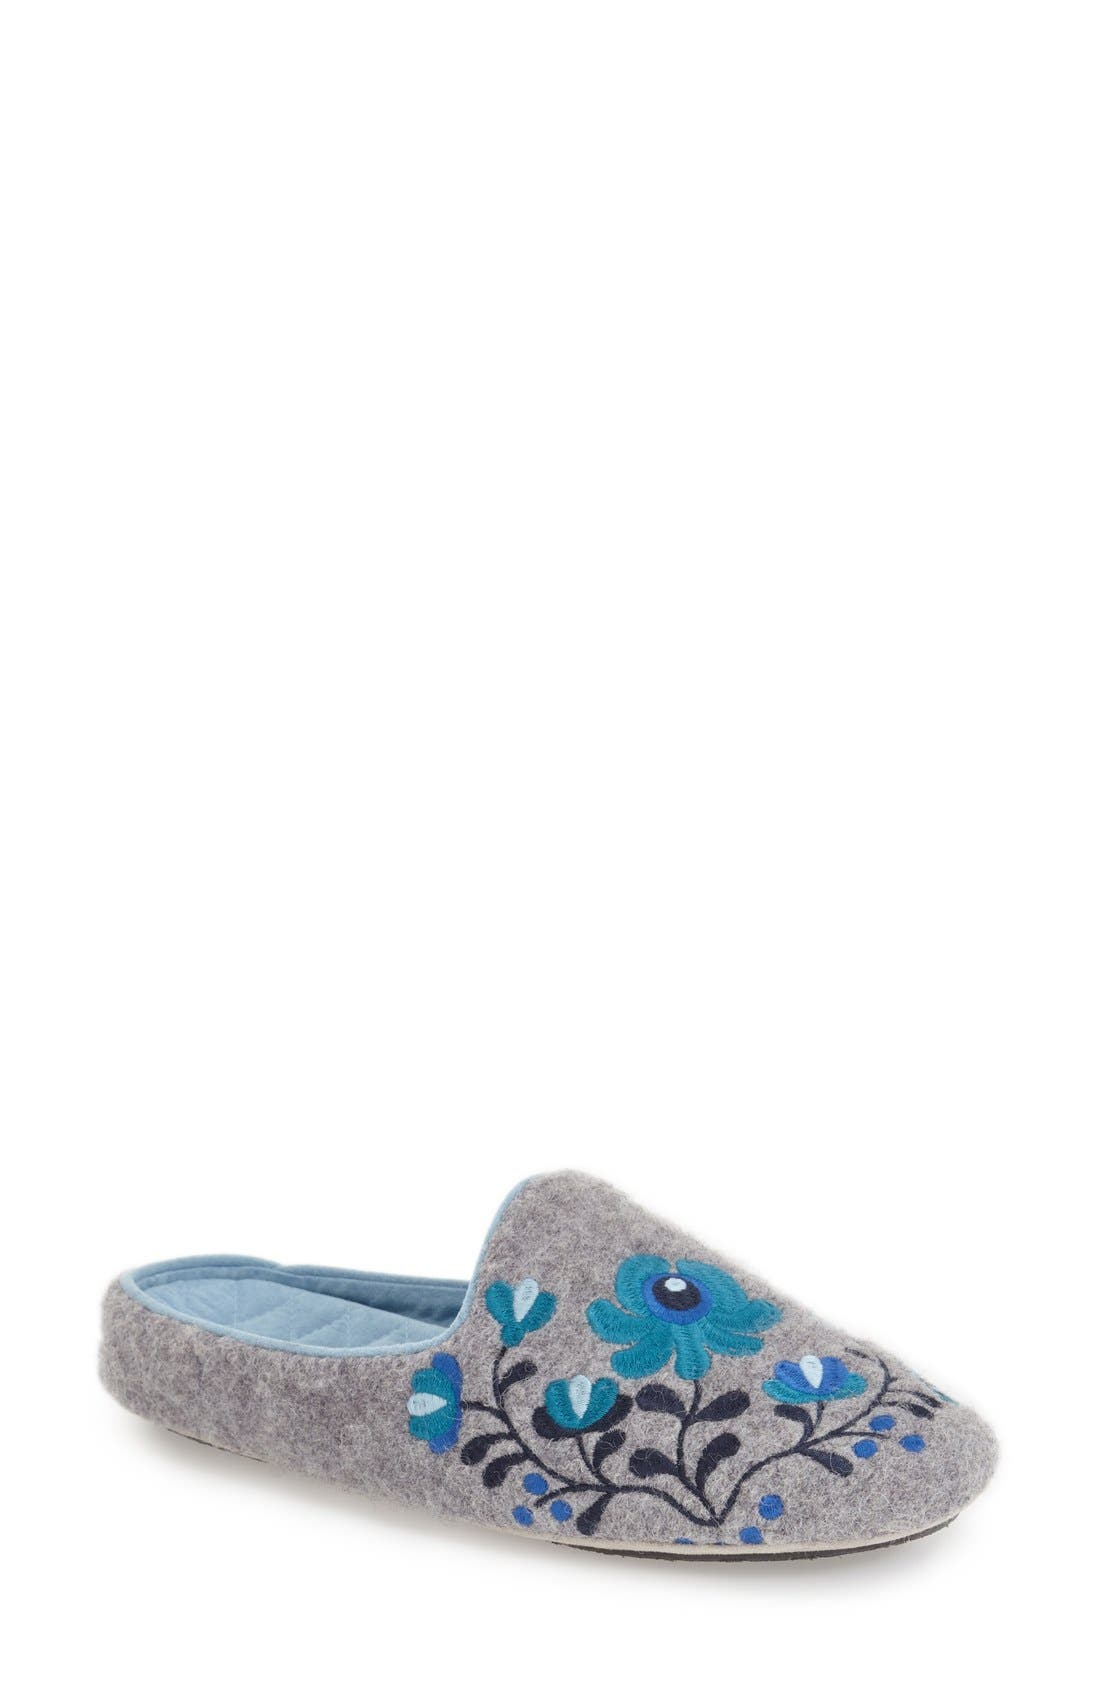 Acorn 'Flower Scuff' Slipper (Women)